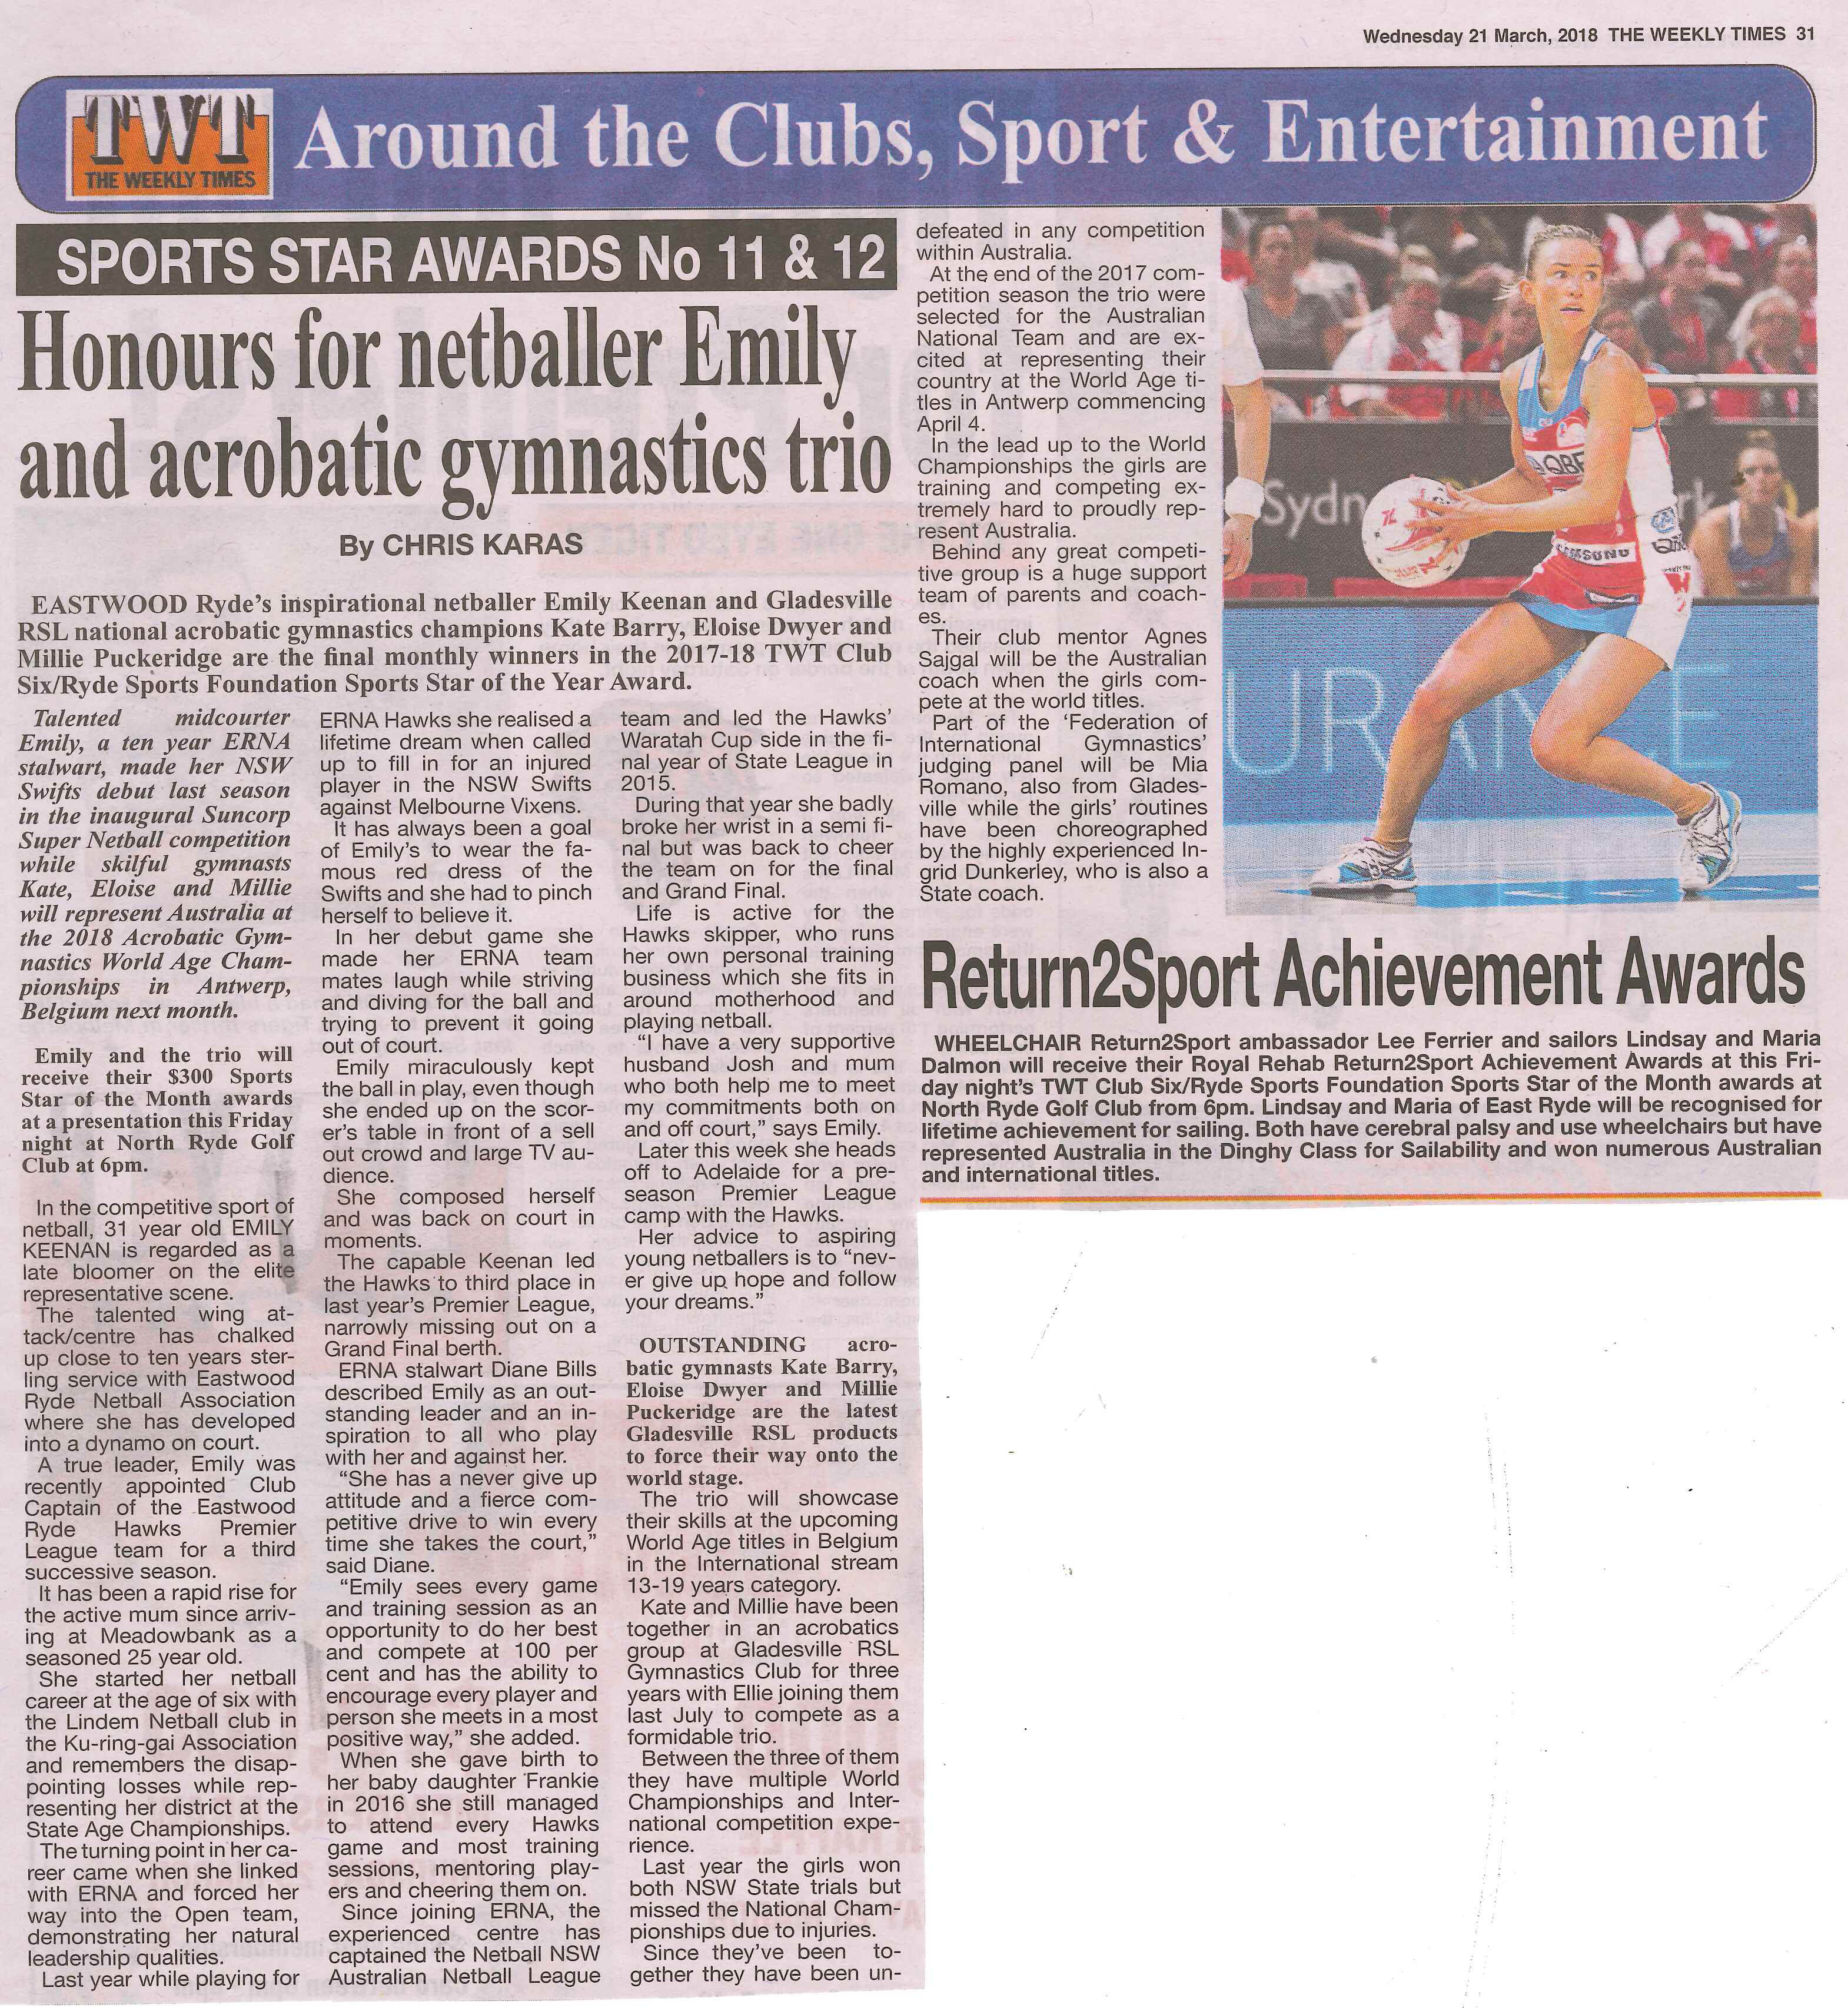 Sports Star Awards Nos 11 & 12 – Ryde Sports Foundation